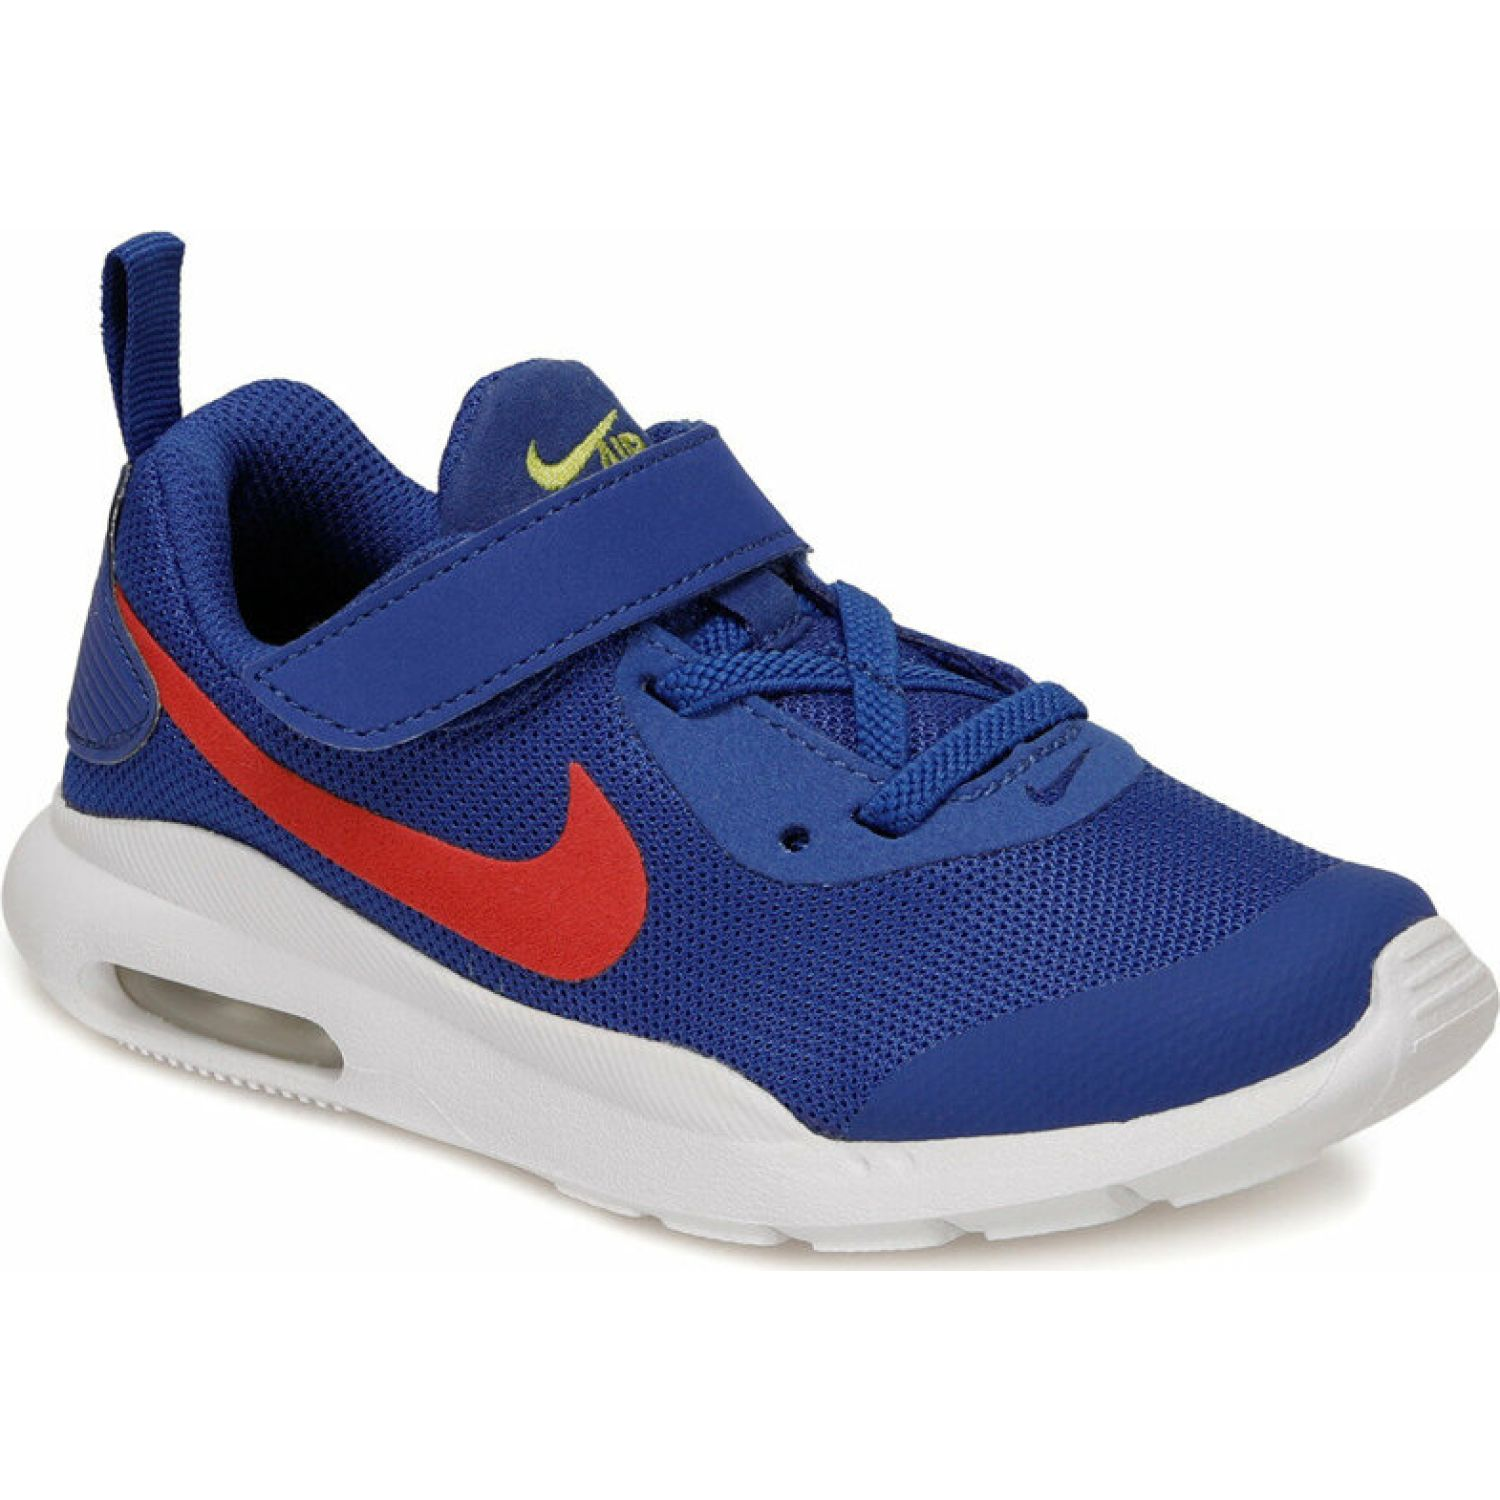 Nike Nike Air Max Oketo Bpv AZUL / CORAL Walking